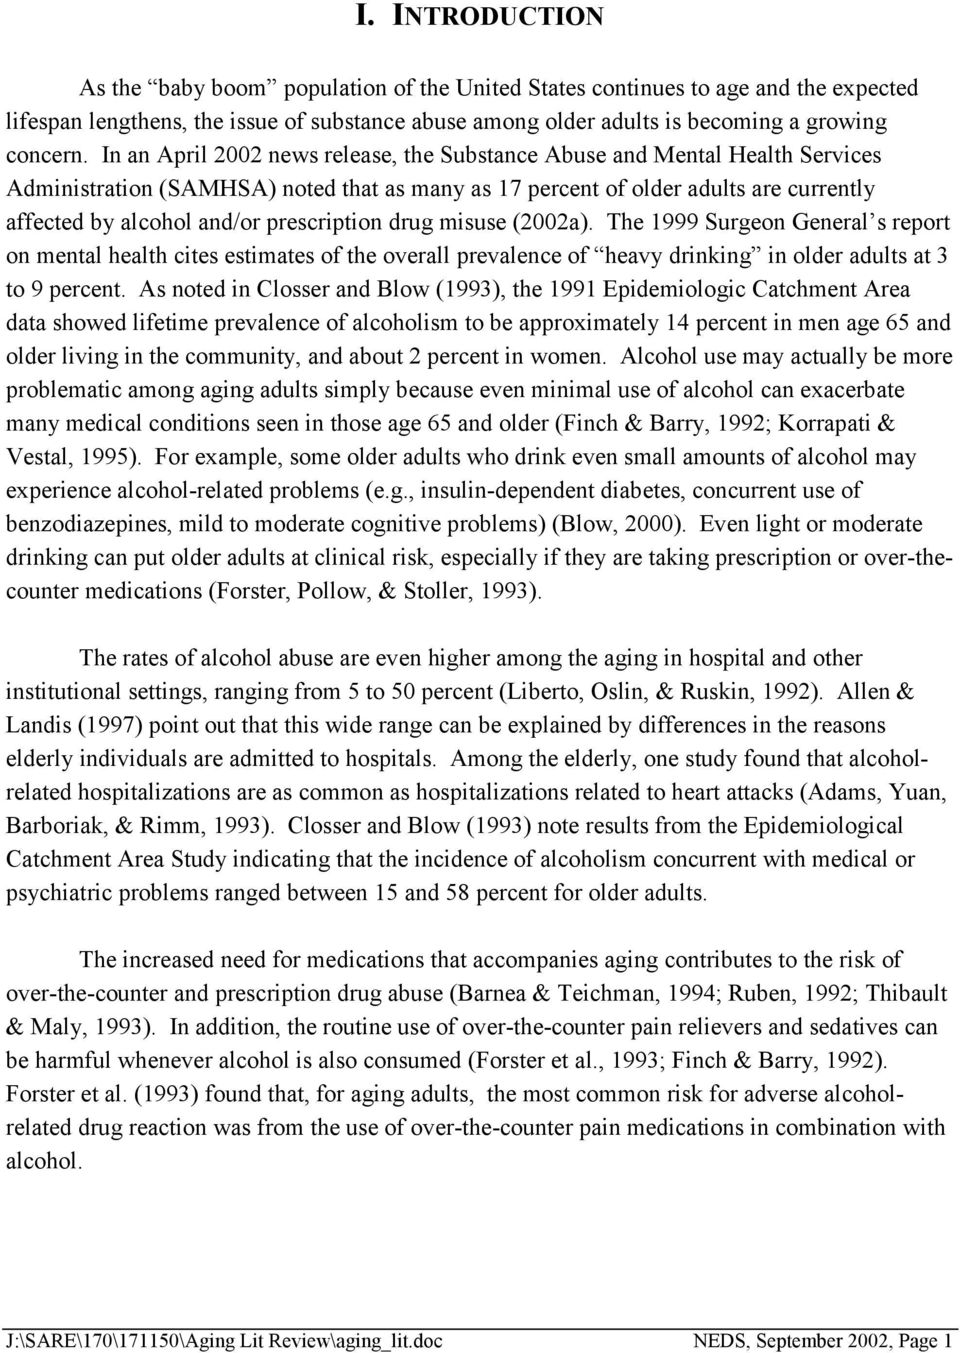 prescription drug misuse (2002a). The 1999 Surgeon General s report on mental health cites estimates of the overall prevalence of heavy drinking in older adults at 3 to 9 percent.